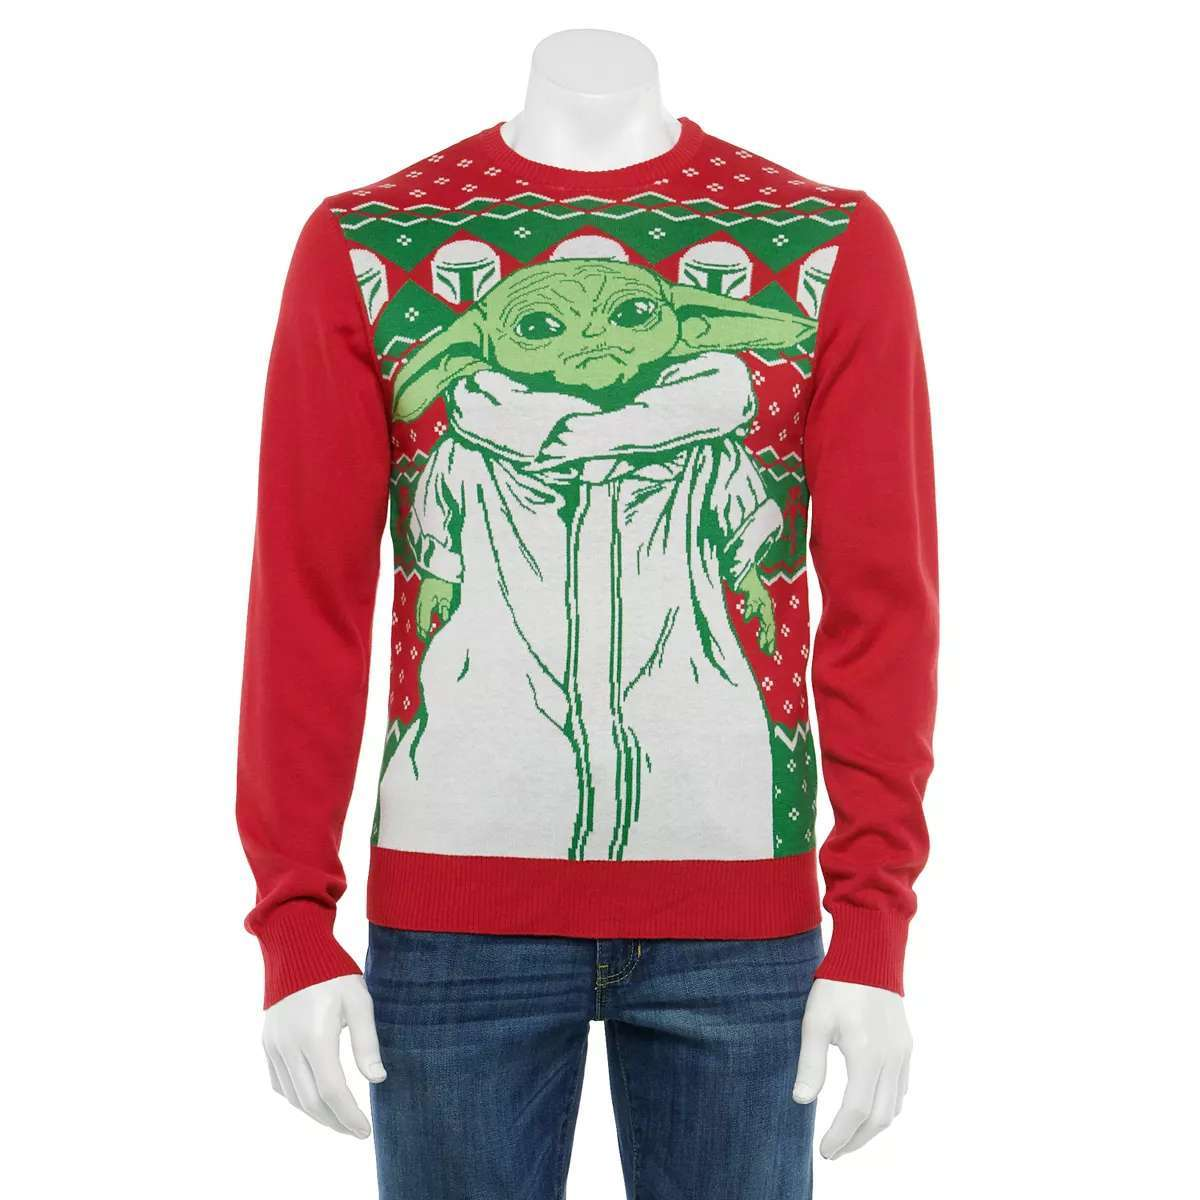 A truly ugly Baby Yoda Christmas sweater.